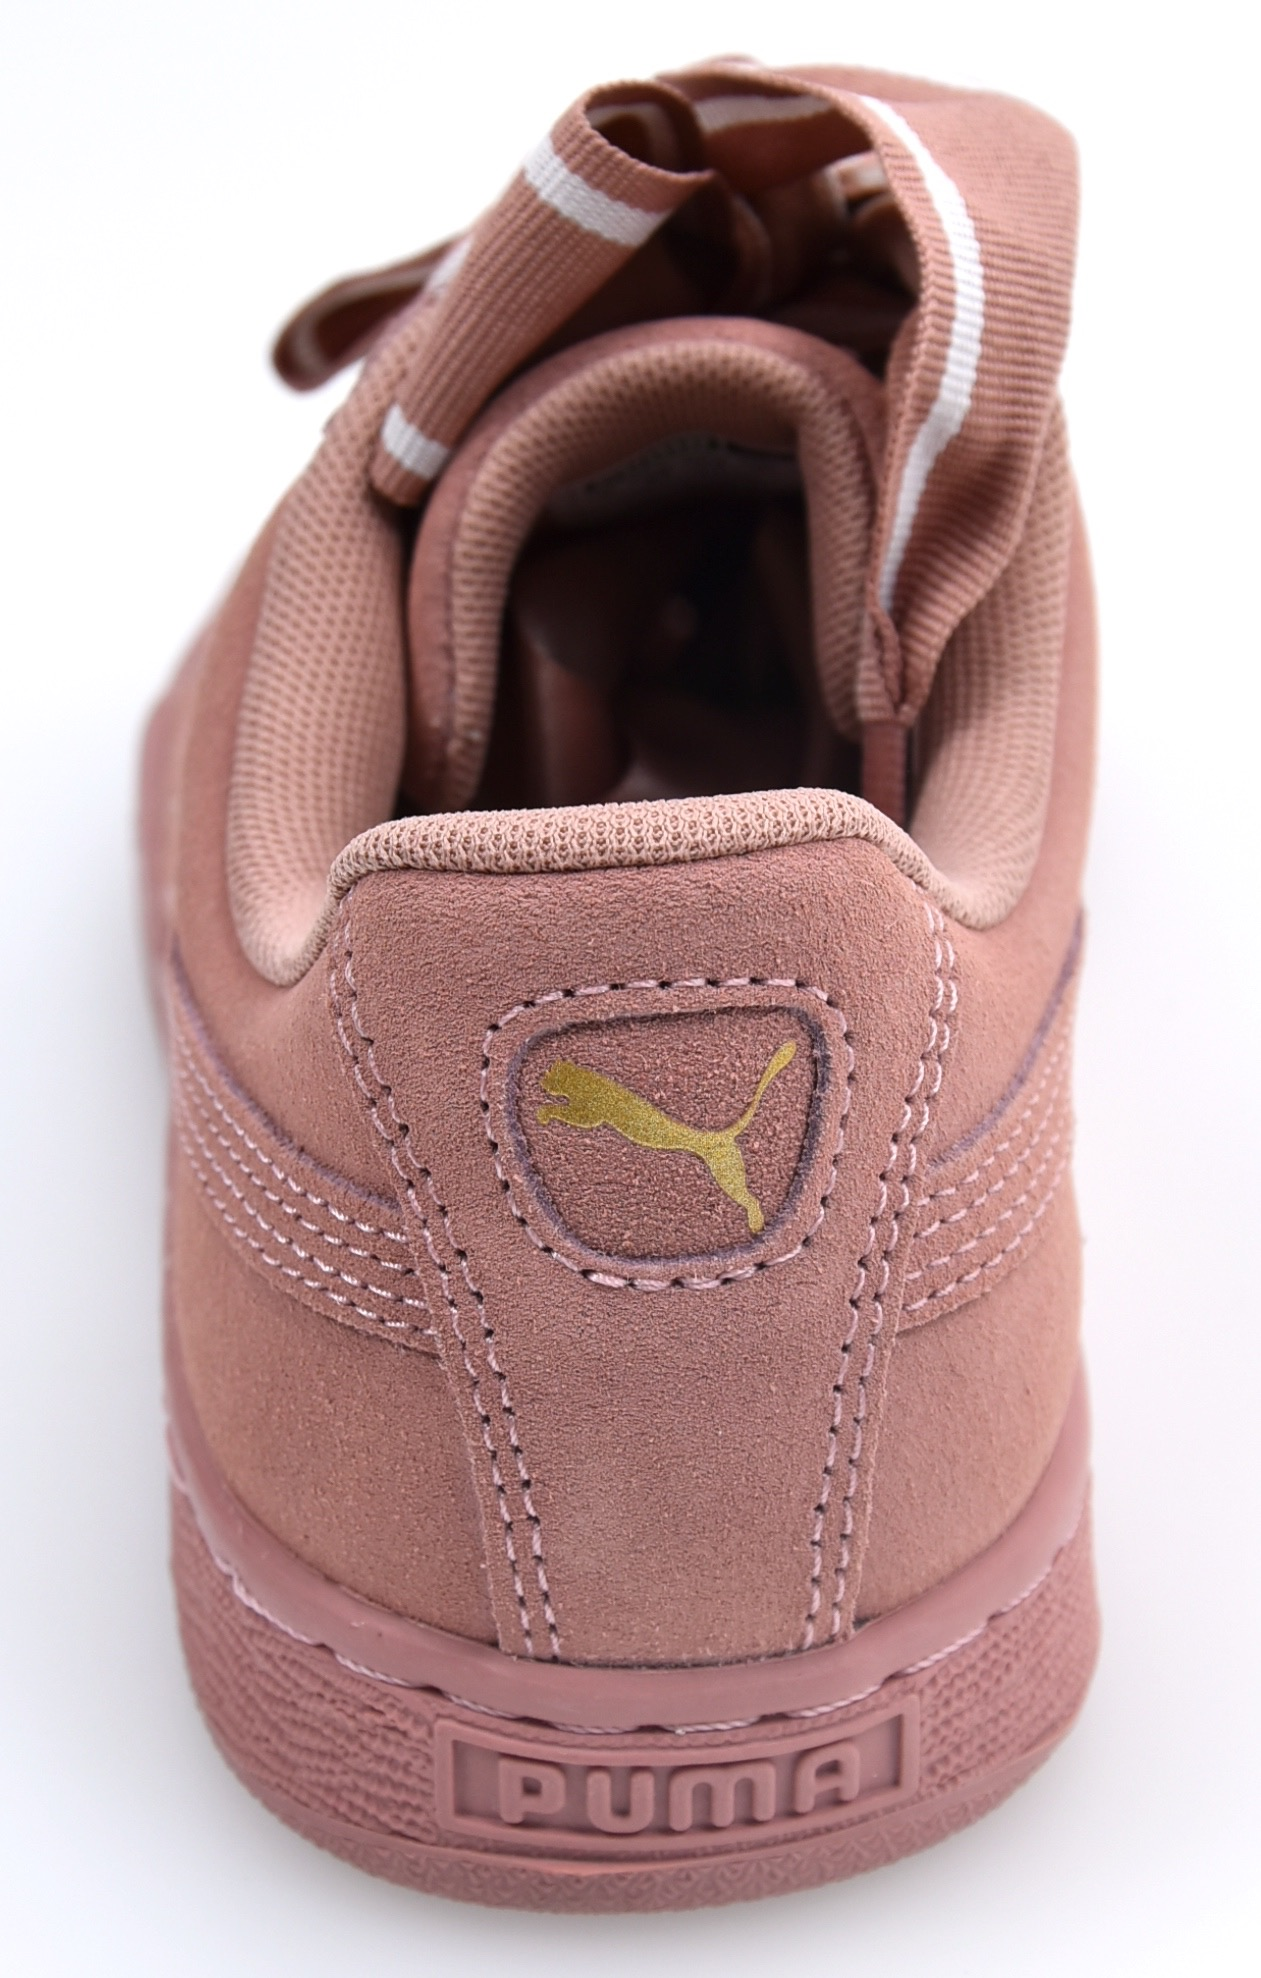 PUMA WOMAN SNEAKER SHOES CASUAL FREE TIME CODE 364084 SUEDE HEART SATIN II  WN S e6a5855af